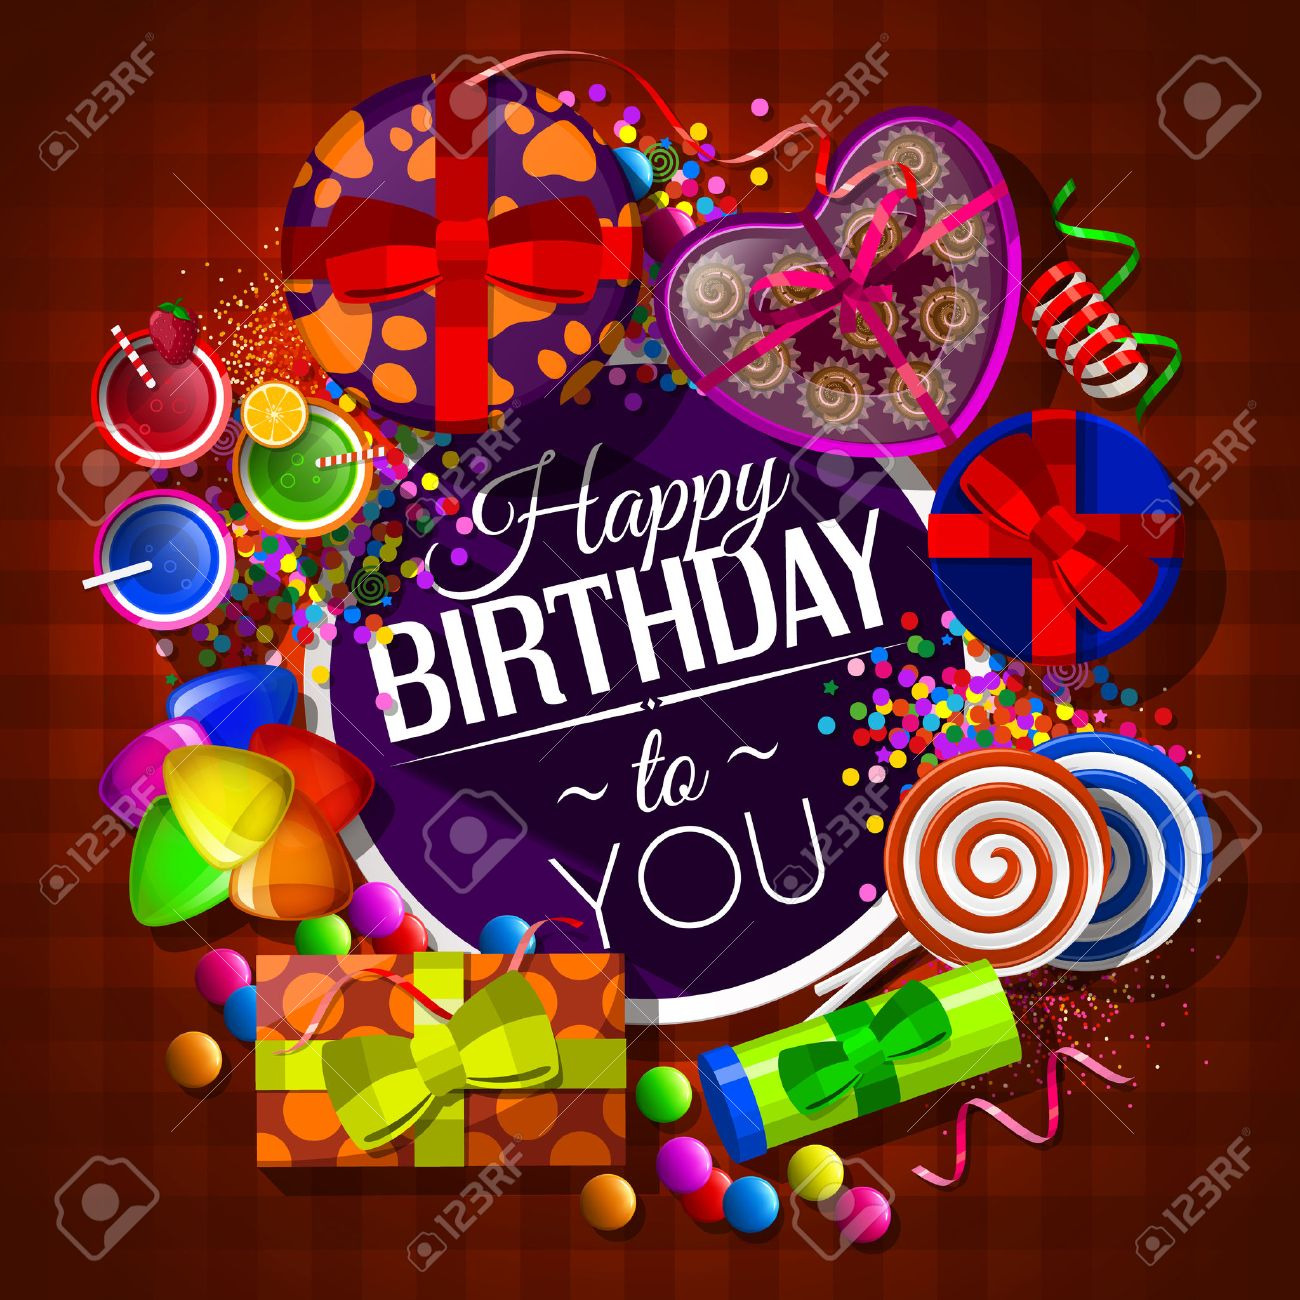 Birthday card with gift boxes, cocktails, lollipops, box of chocolates and confetti. - 47354190